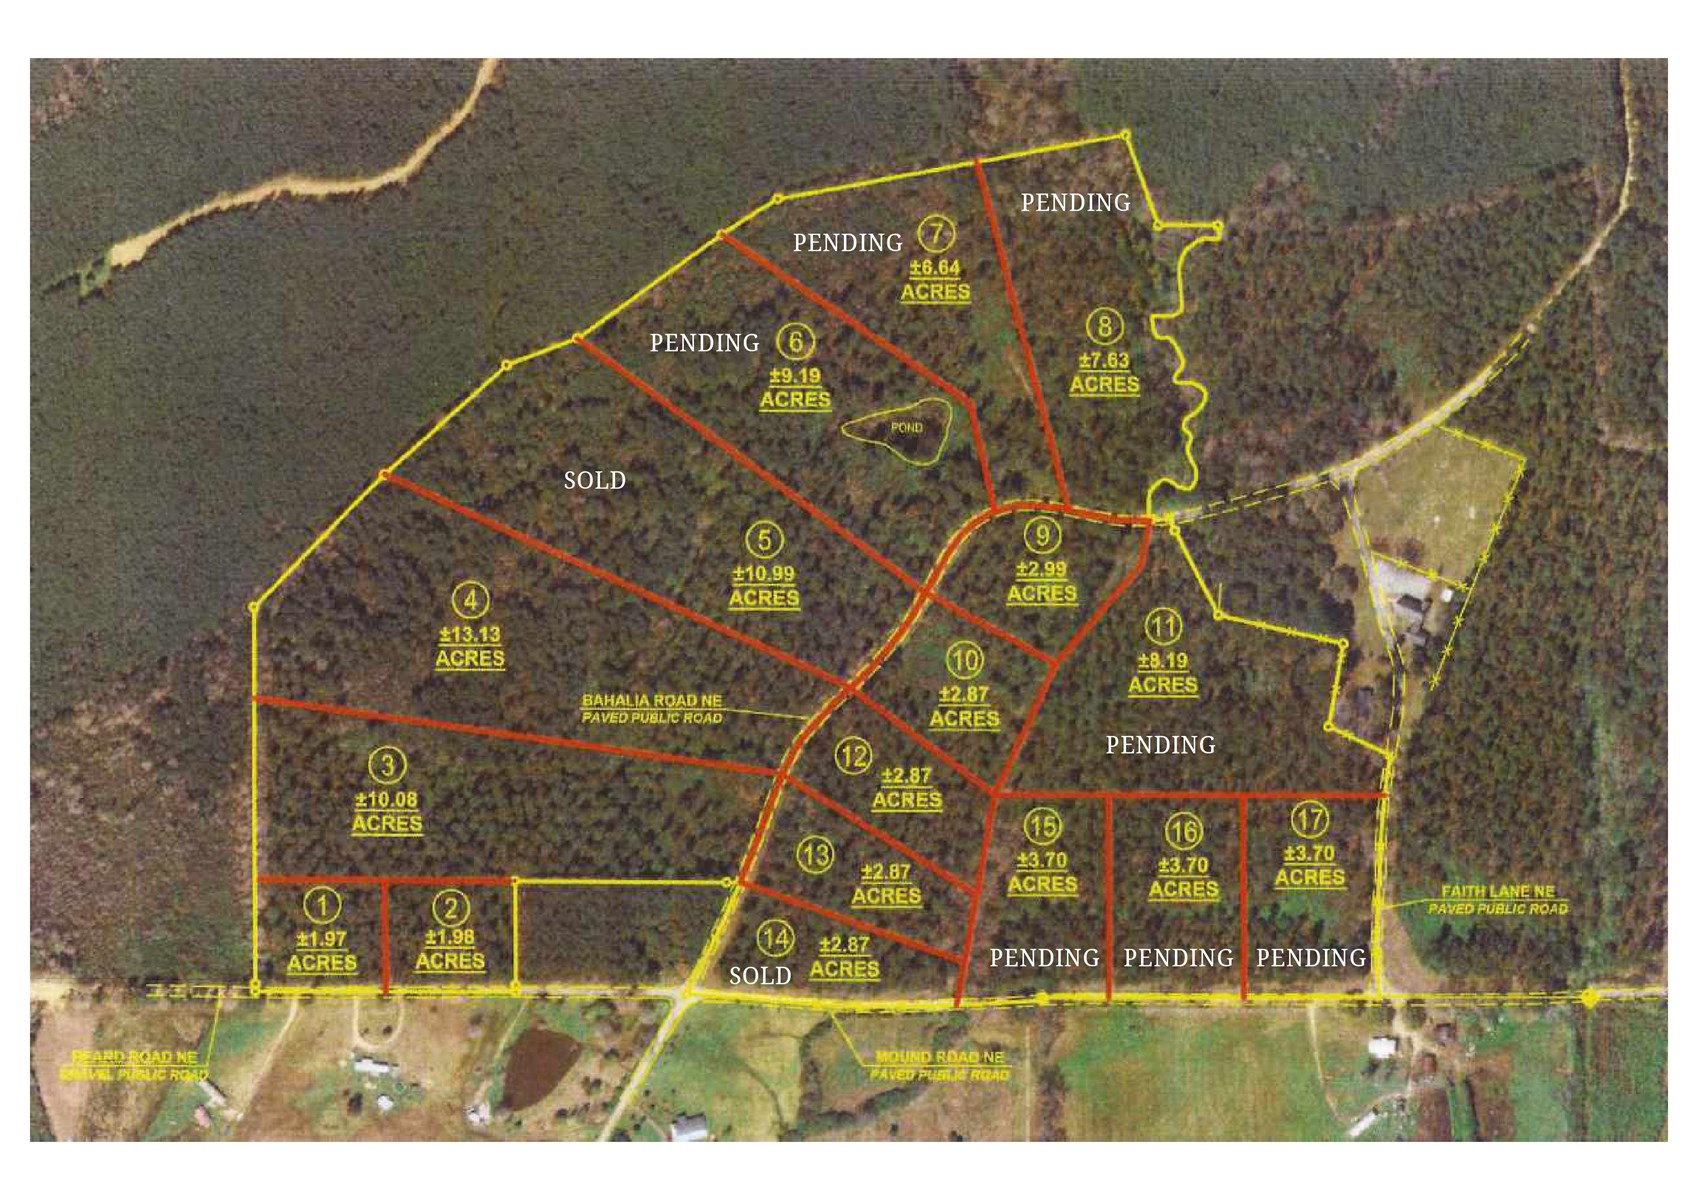 Land for Sale in the Country for Mobile Homes, Brookhaven MS